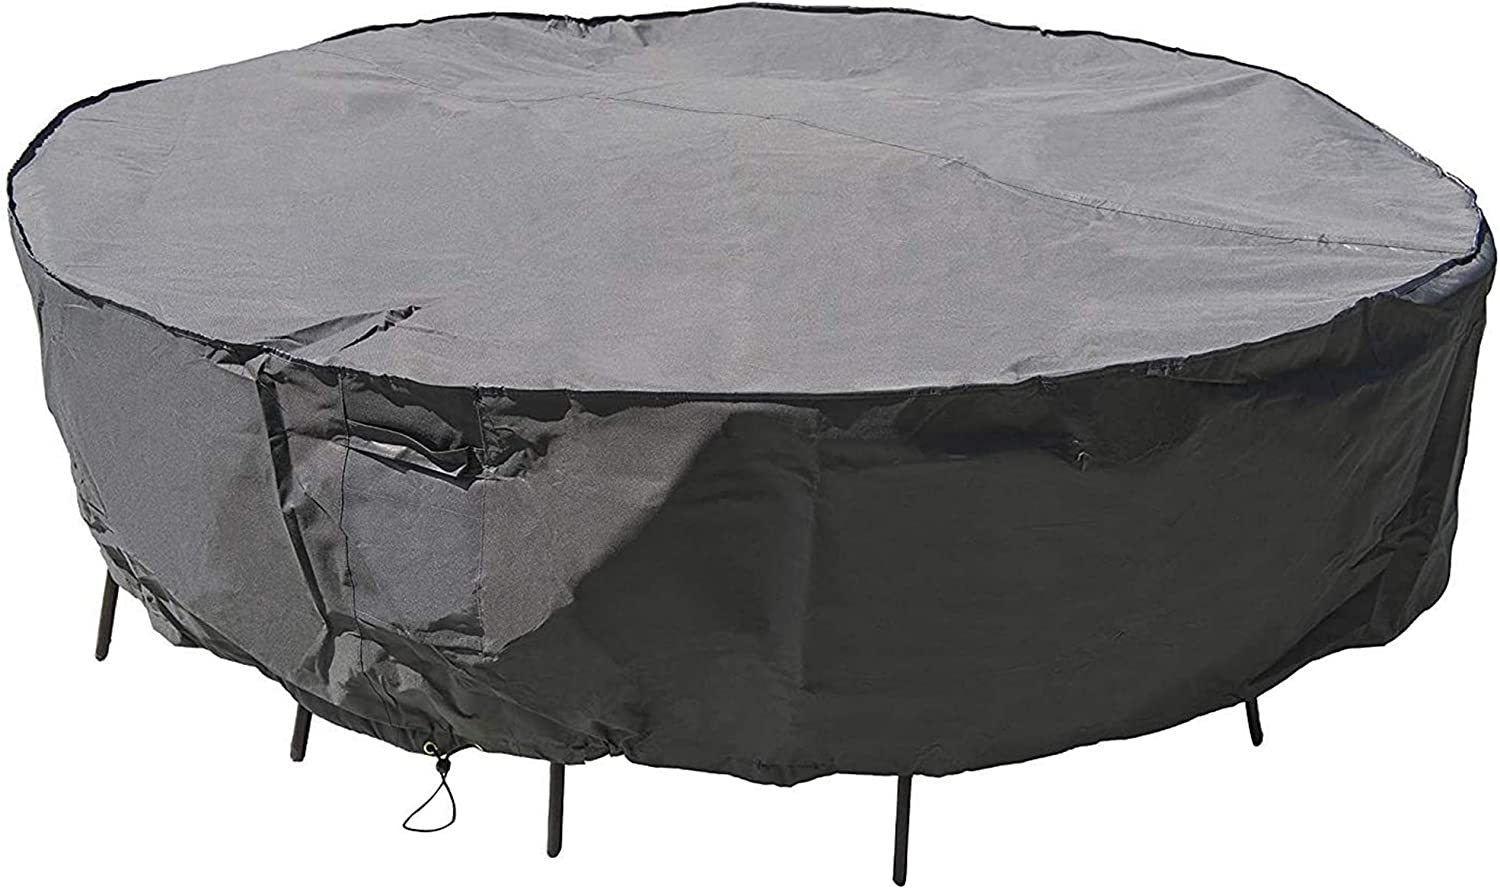 """MH M&H Patio Furniture Covers for Round Table and Chairs, Outdoor Furniture Covers Waterproof with Handles and Durable Hem Cord, Fit Large Round Furniture Set, 600D UV Resistant Fabric, 108"""" Dia Taupe"""